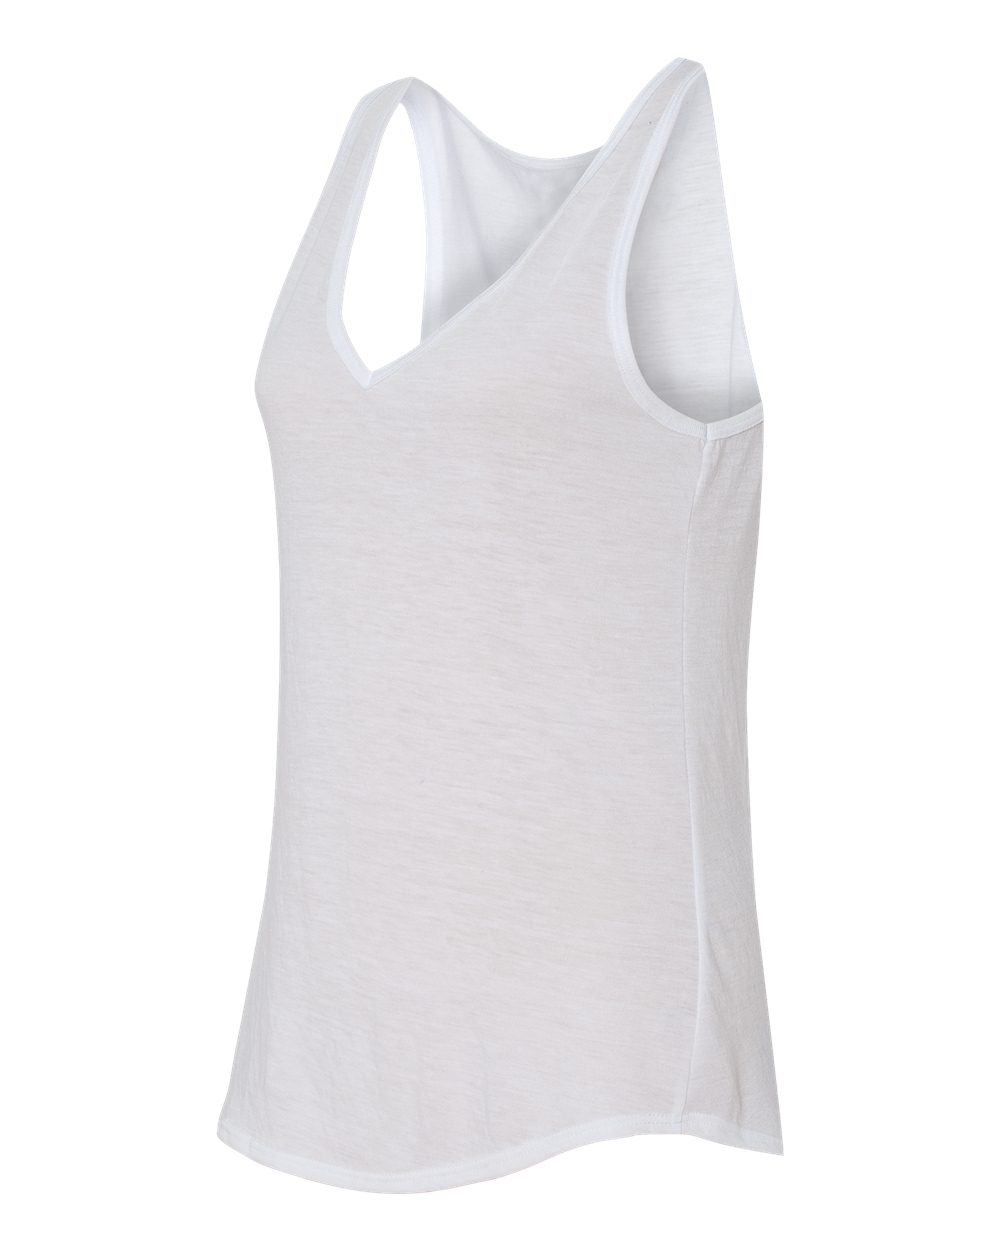 Bella-Canvas-Women-039-s-Flowy-V-Neck-Tank-B8805-S-2XL thumbnail 21